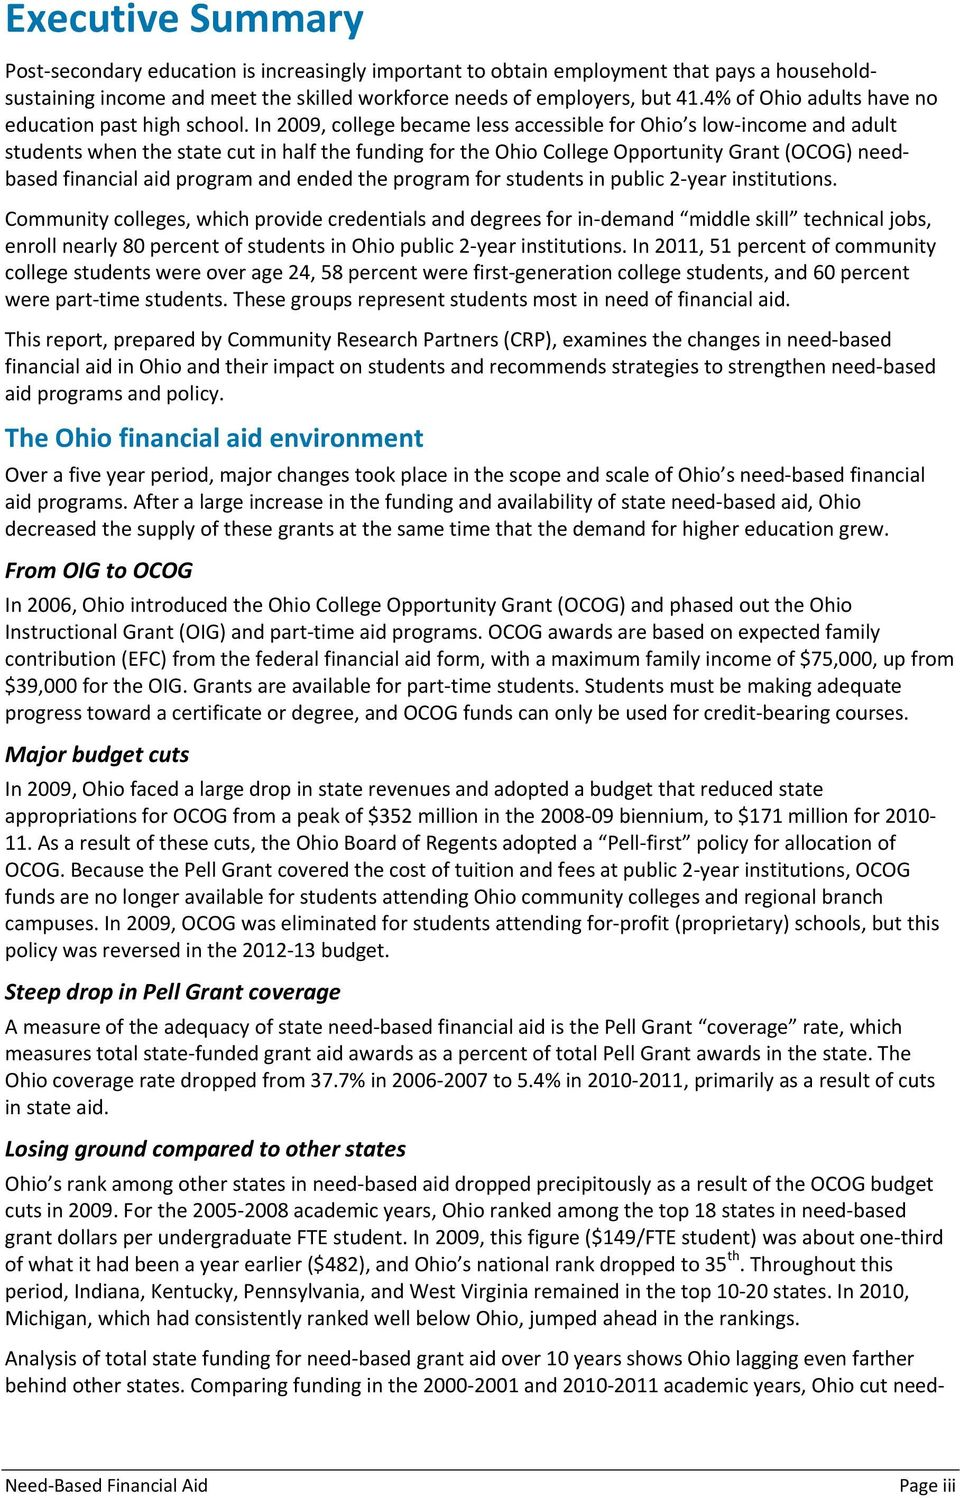 In 2009, college became less accessible for Ohio s low income and adult students when the state cut in half the funding for the Ohio College Opportunity Grant (OCOG) needbased financial aid program